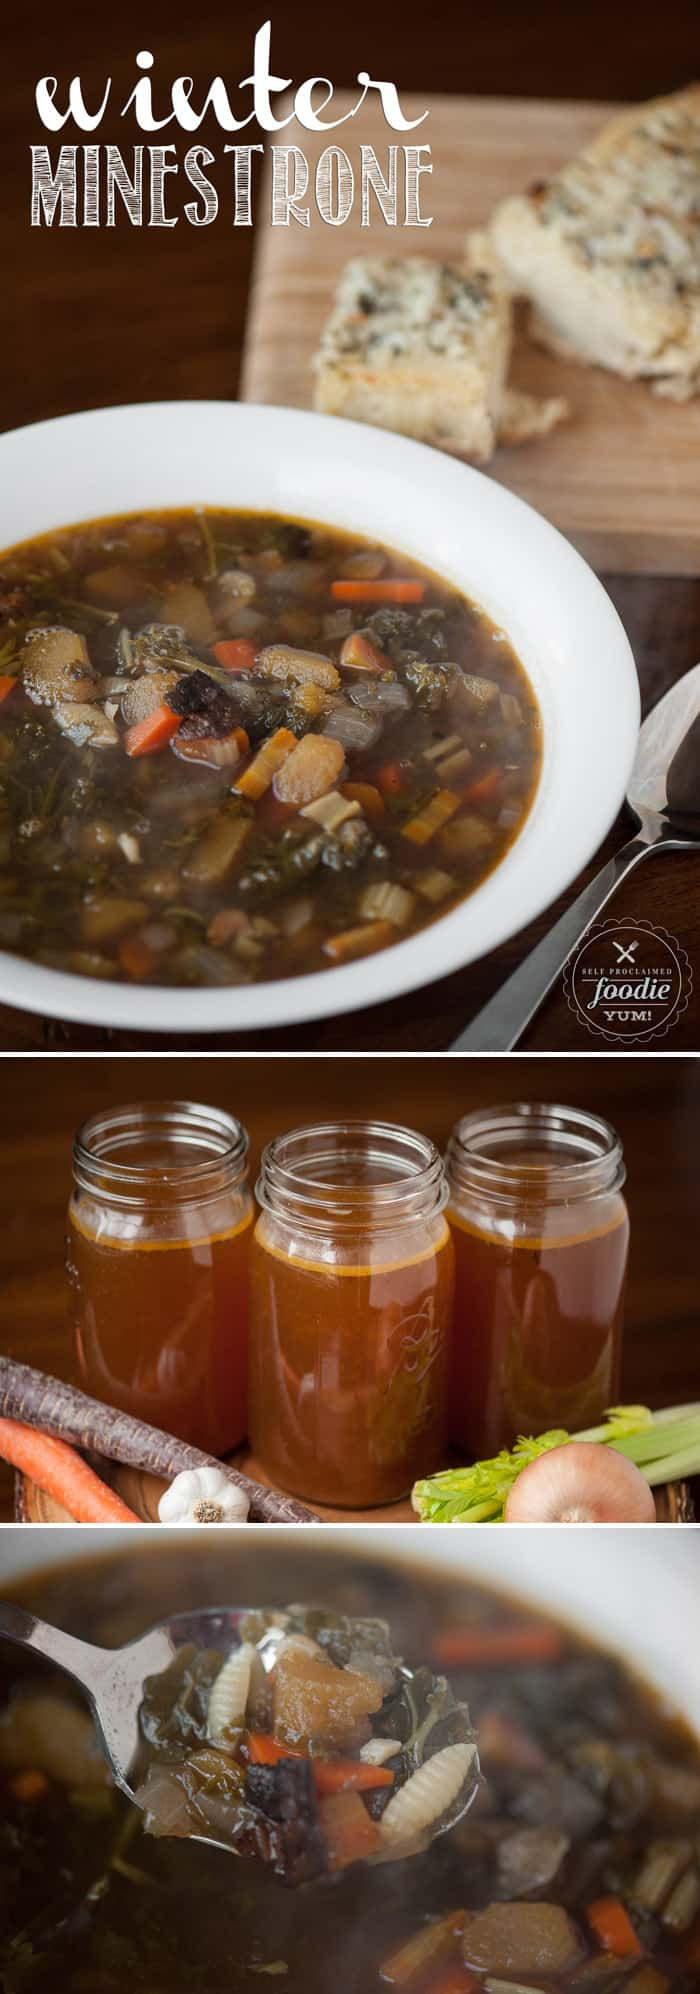 Homemade Winter Minestrone is a healthy and hearty winter soup full of cold weather favorites like kale, squash, beans, bacon, pasta, and savory beef broth.